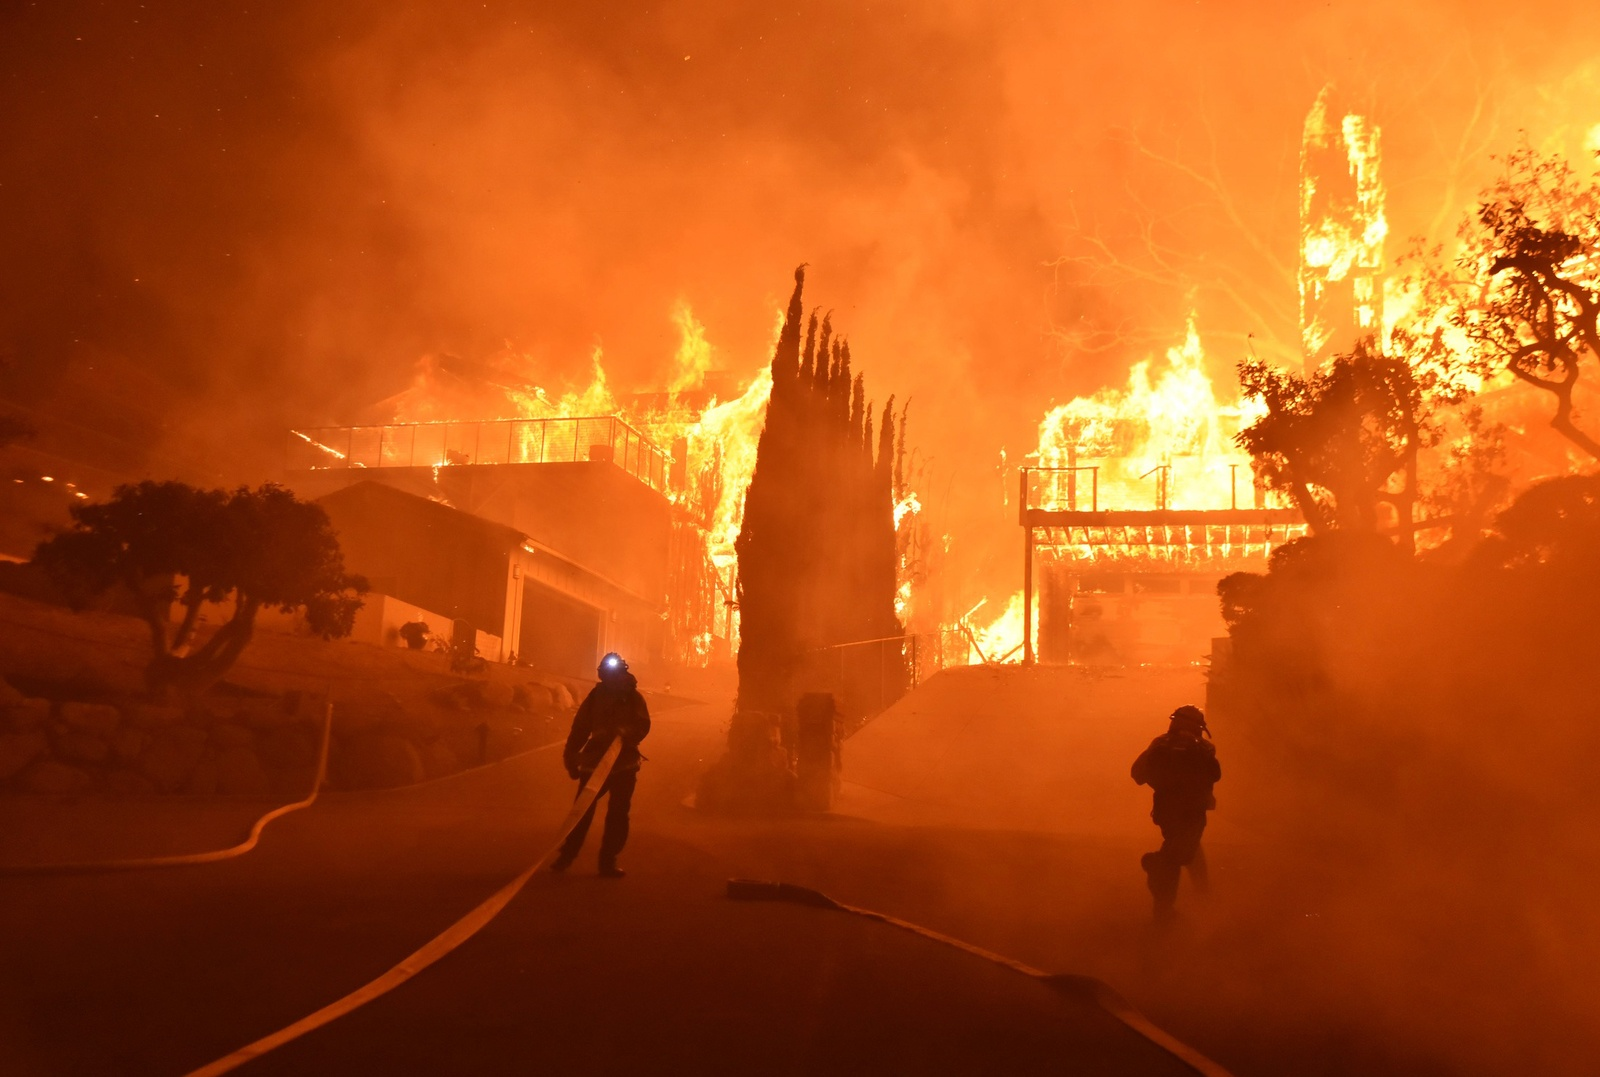 Daniel swain institute of the environment and sustainability at ucla ucla experts explain why california is burning in december xflitez Image collections